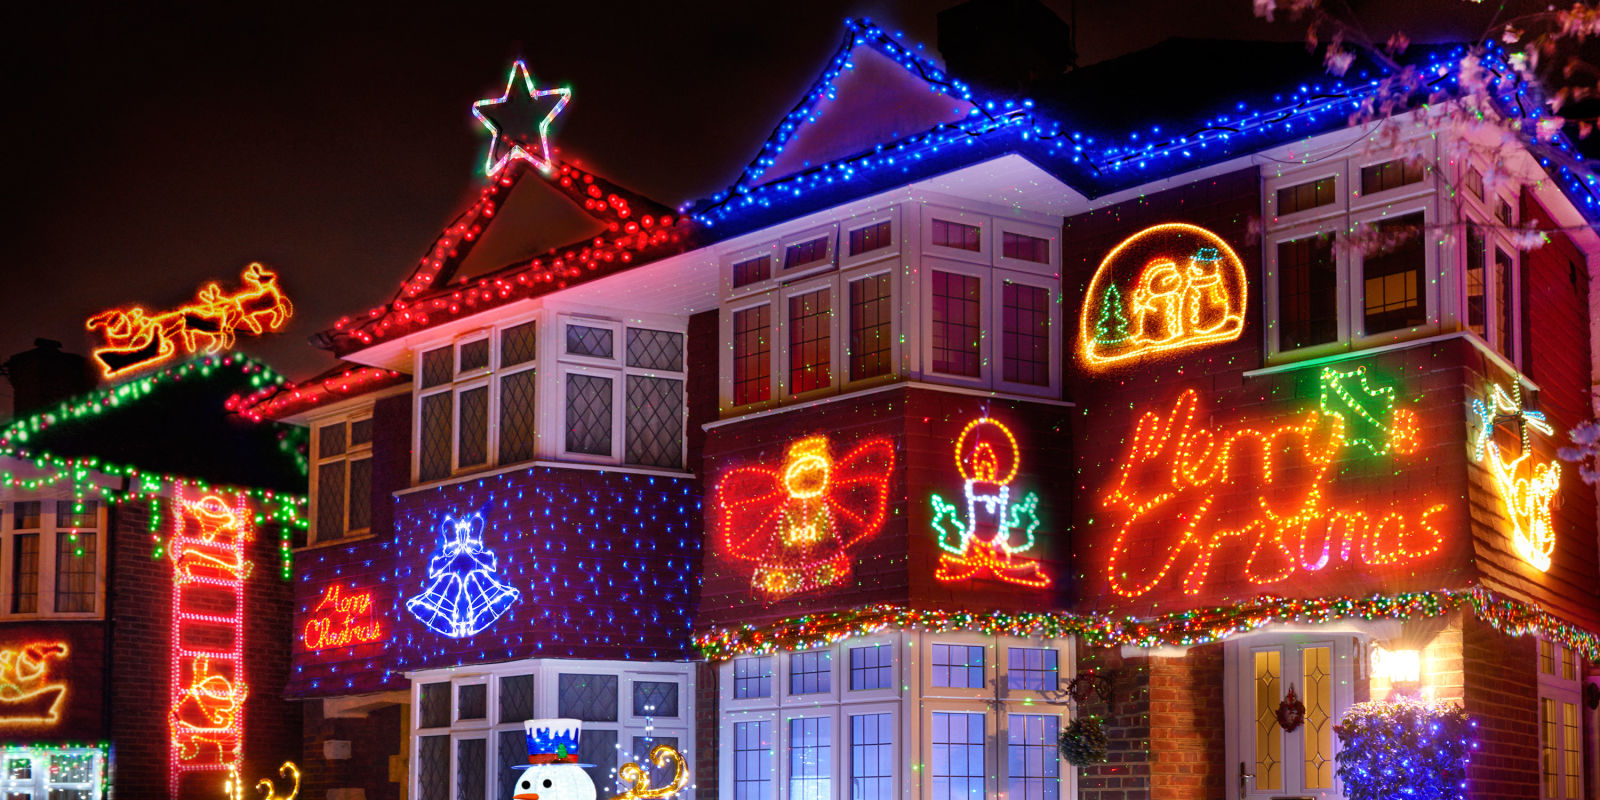 These christmas decorations are 39 common 39 claims etiquette for Well dressed home christmas decorations